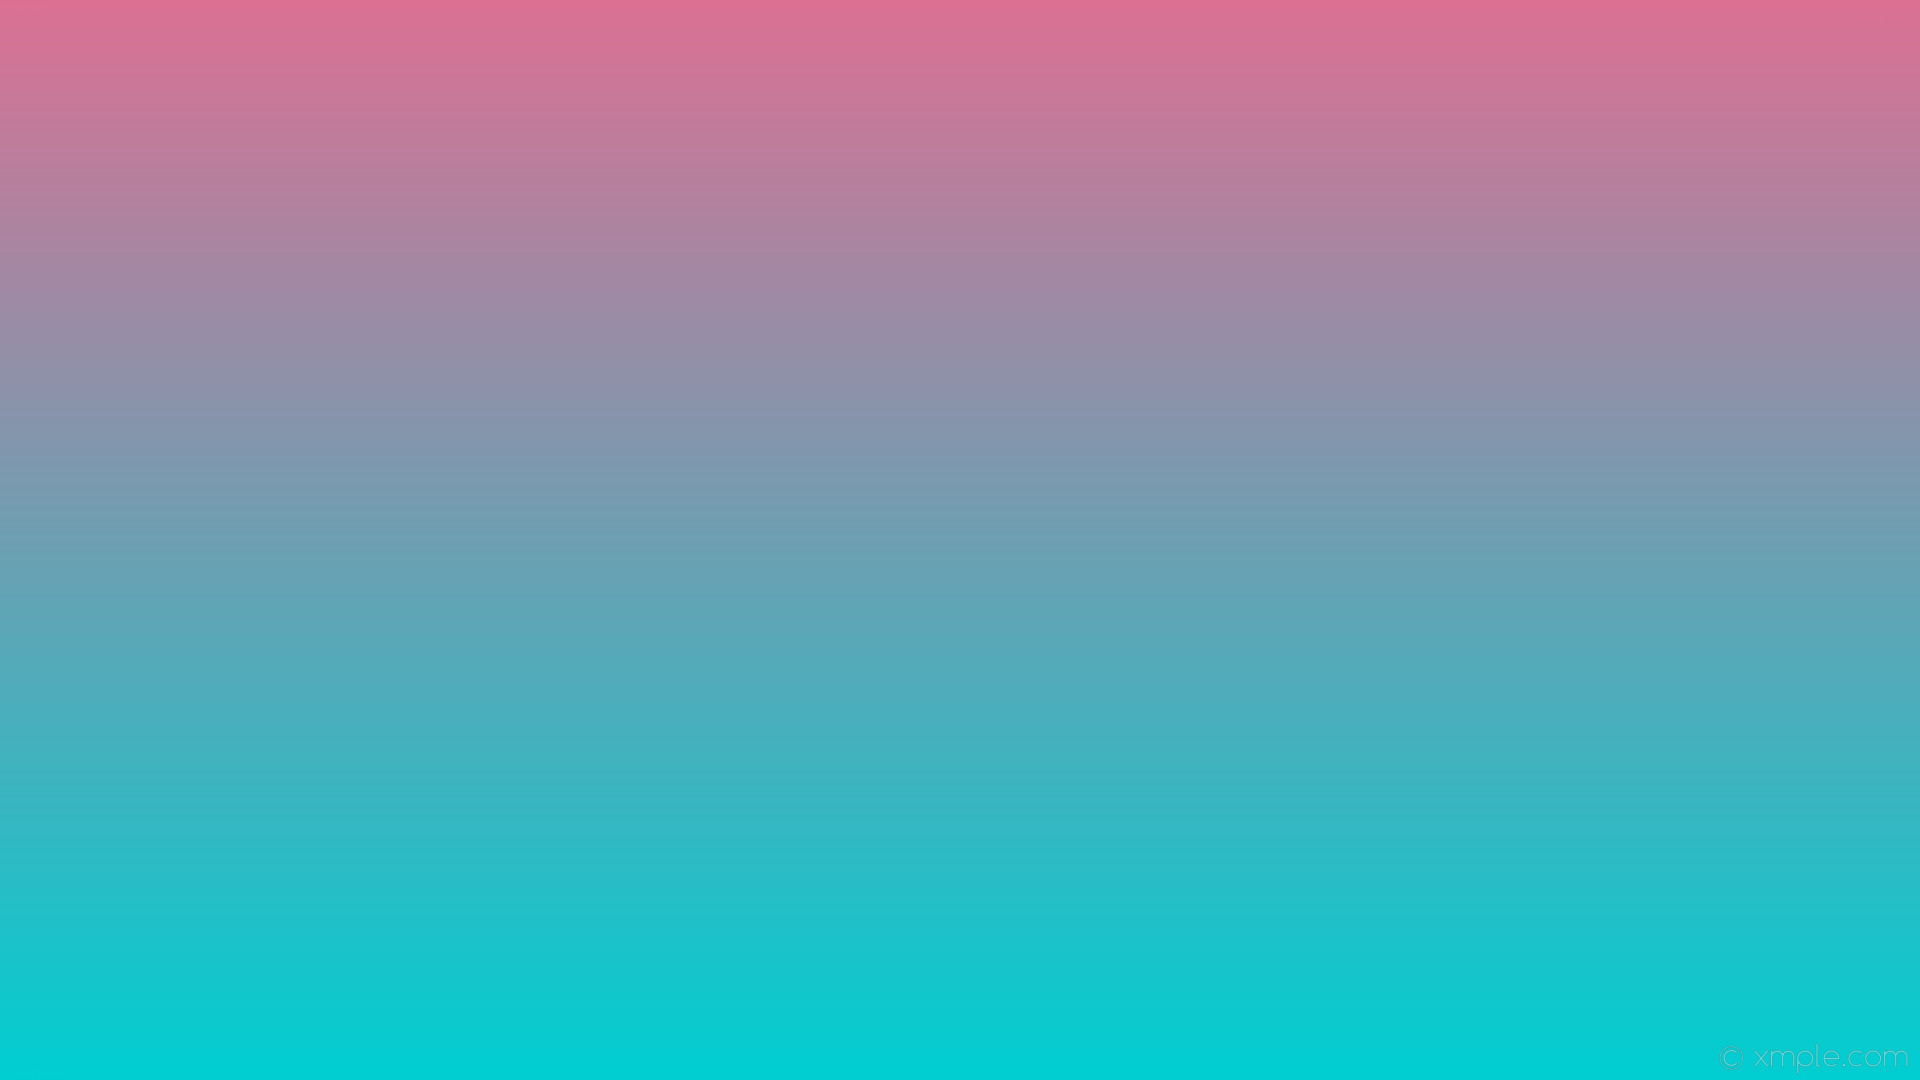 wallpaper blue linear pink gradient pale violet red dark turquoise #db7093  #00ced1 90°